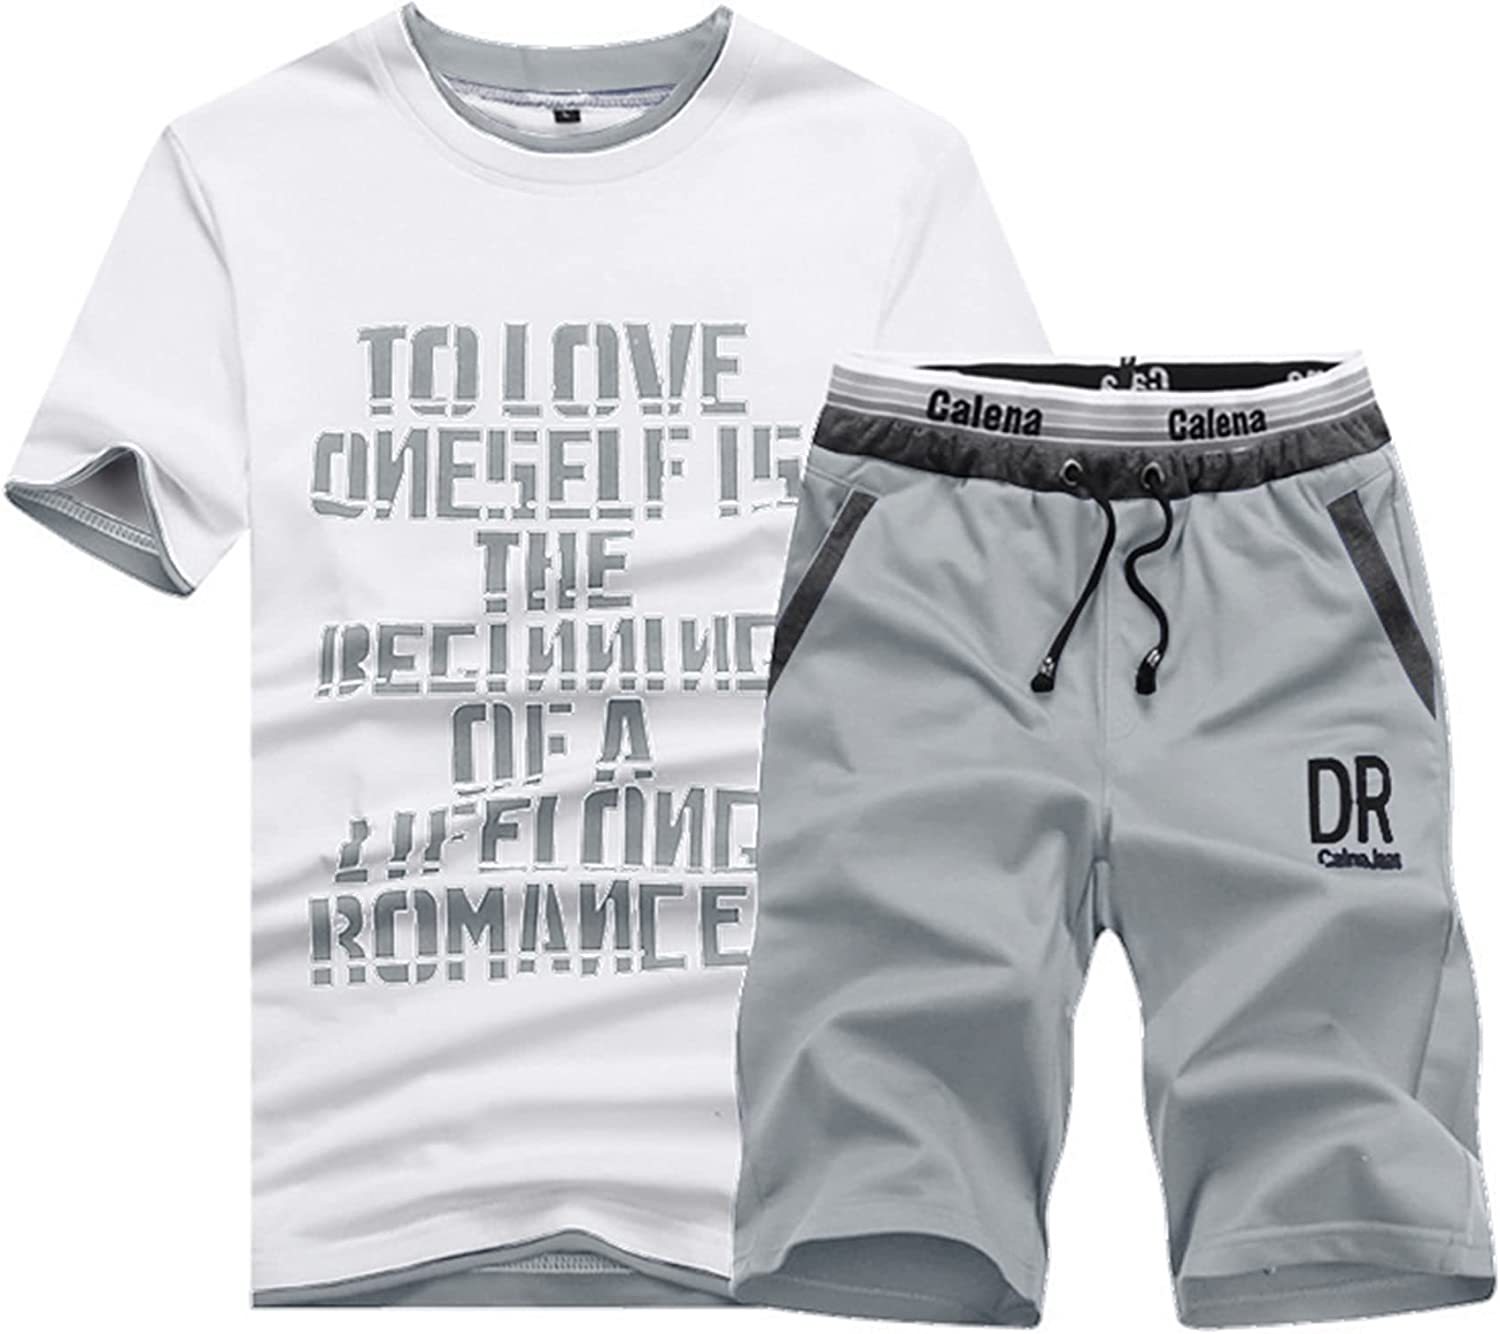 Men's Translated Shorts OFFicial store Set - 2 Pieces T-shi Short Sleeve Sport Outfits